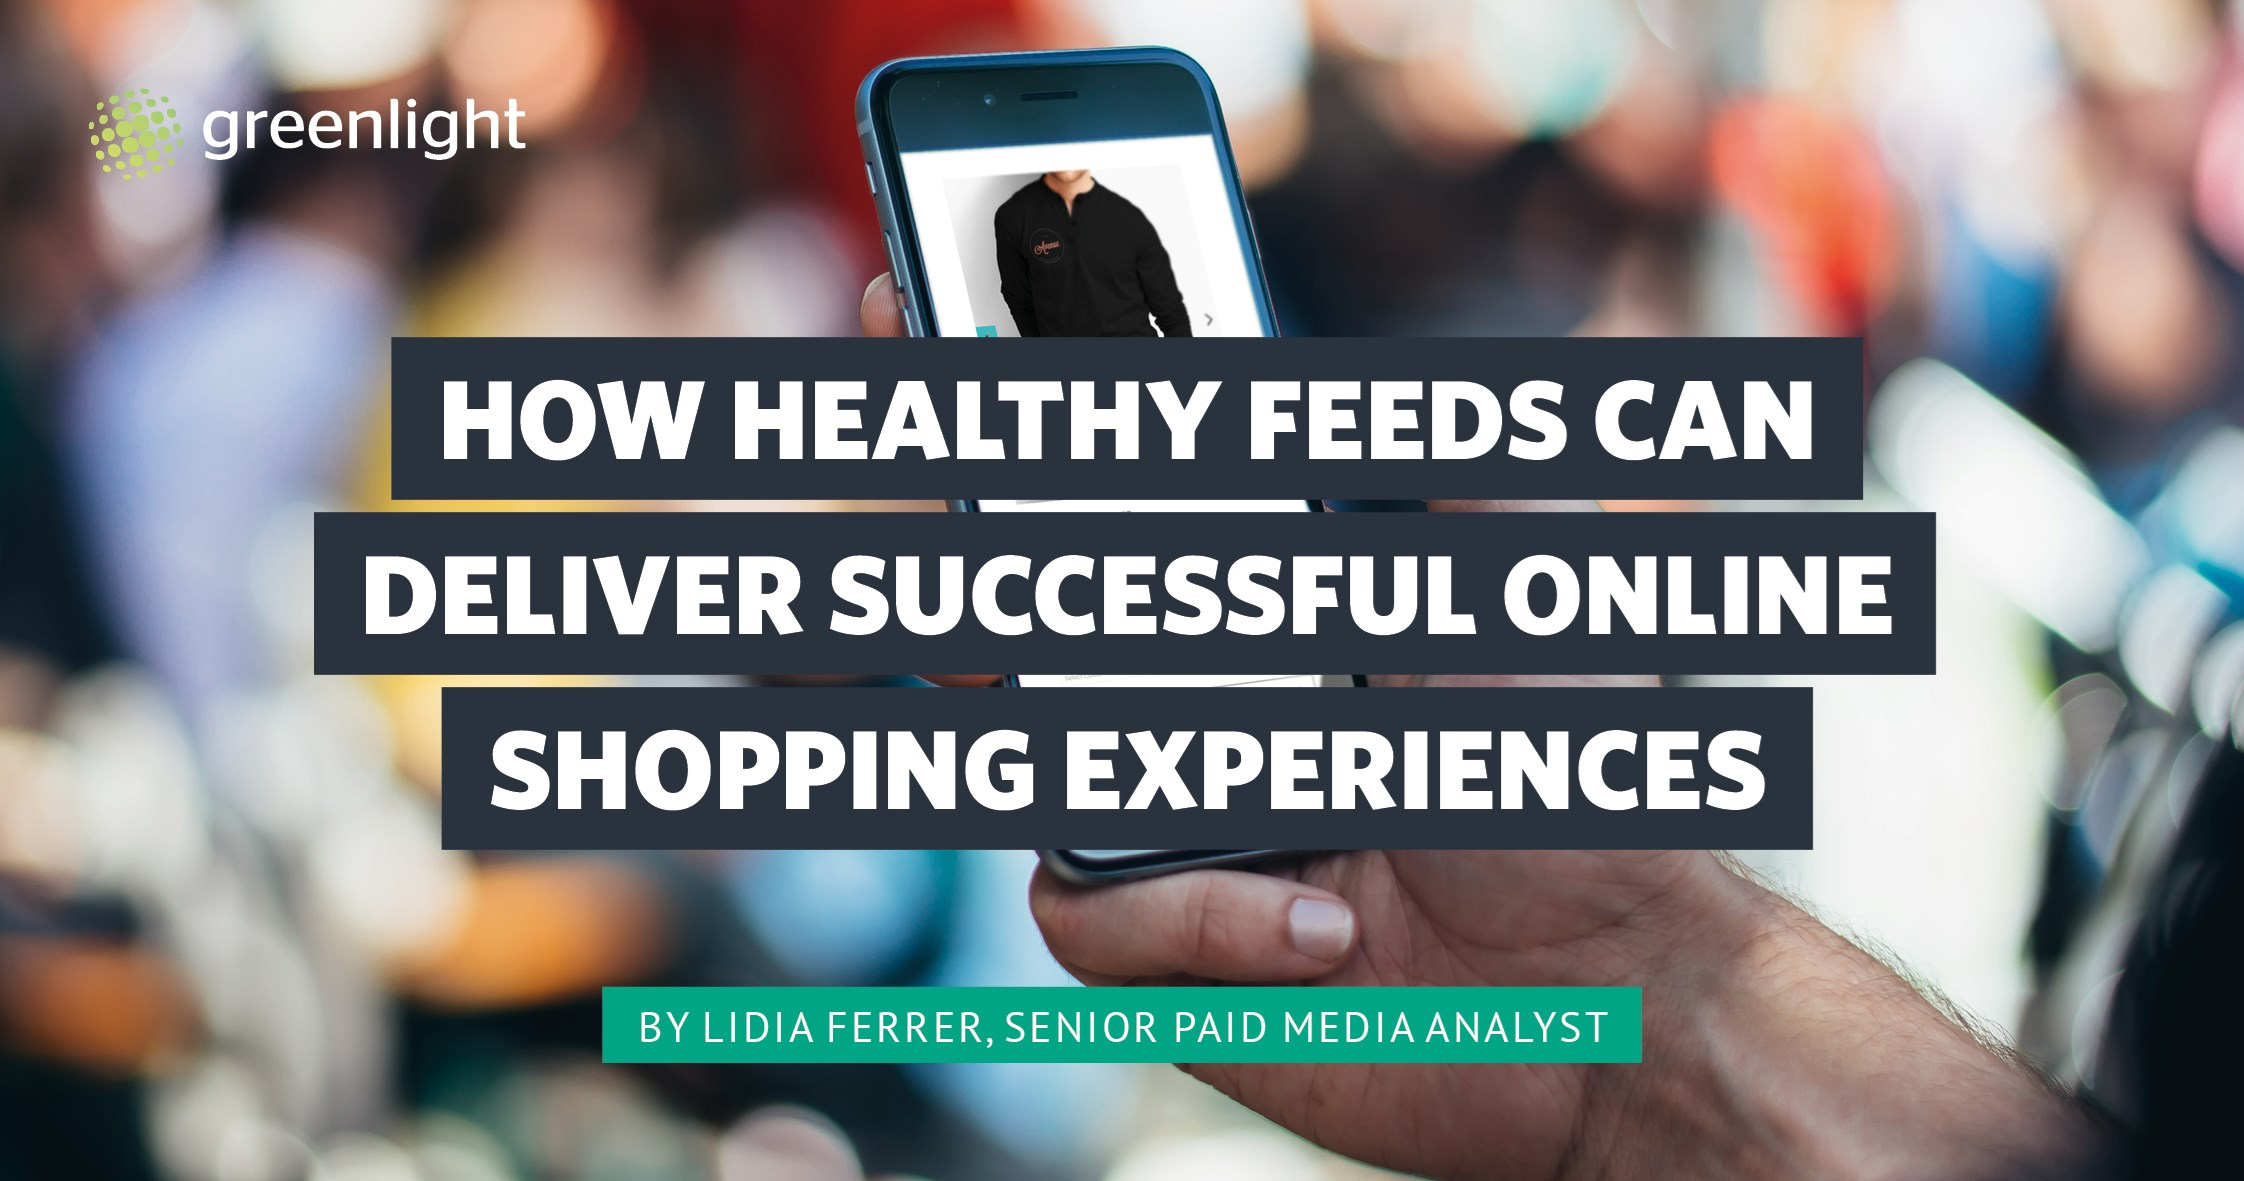 How Healthy Feeds Can Deliver Successful Online Shopping Experiences